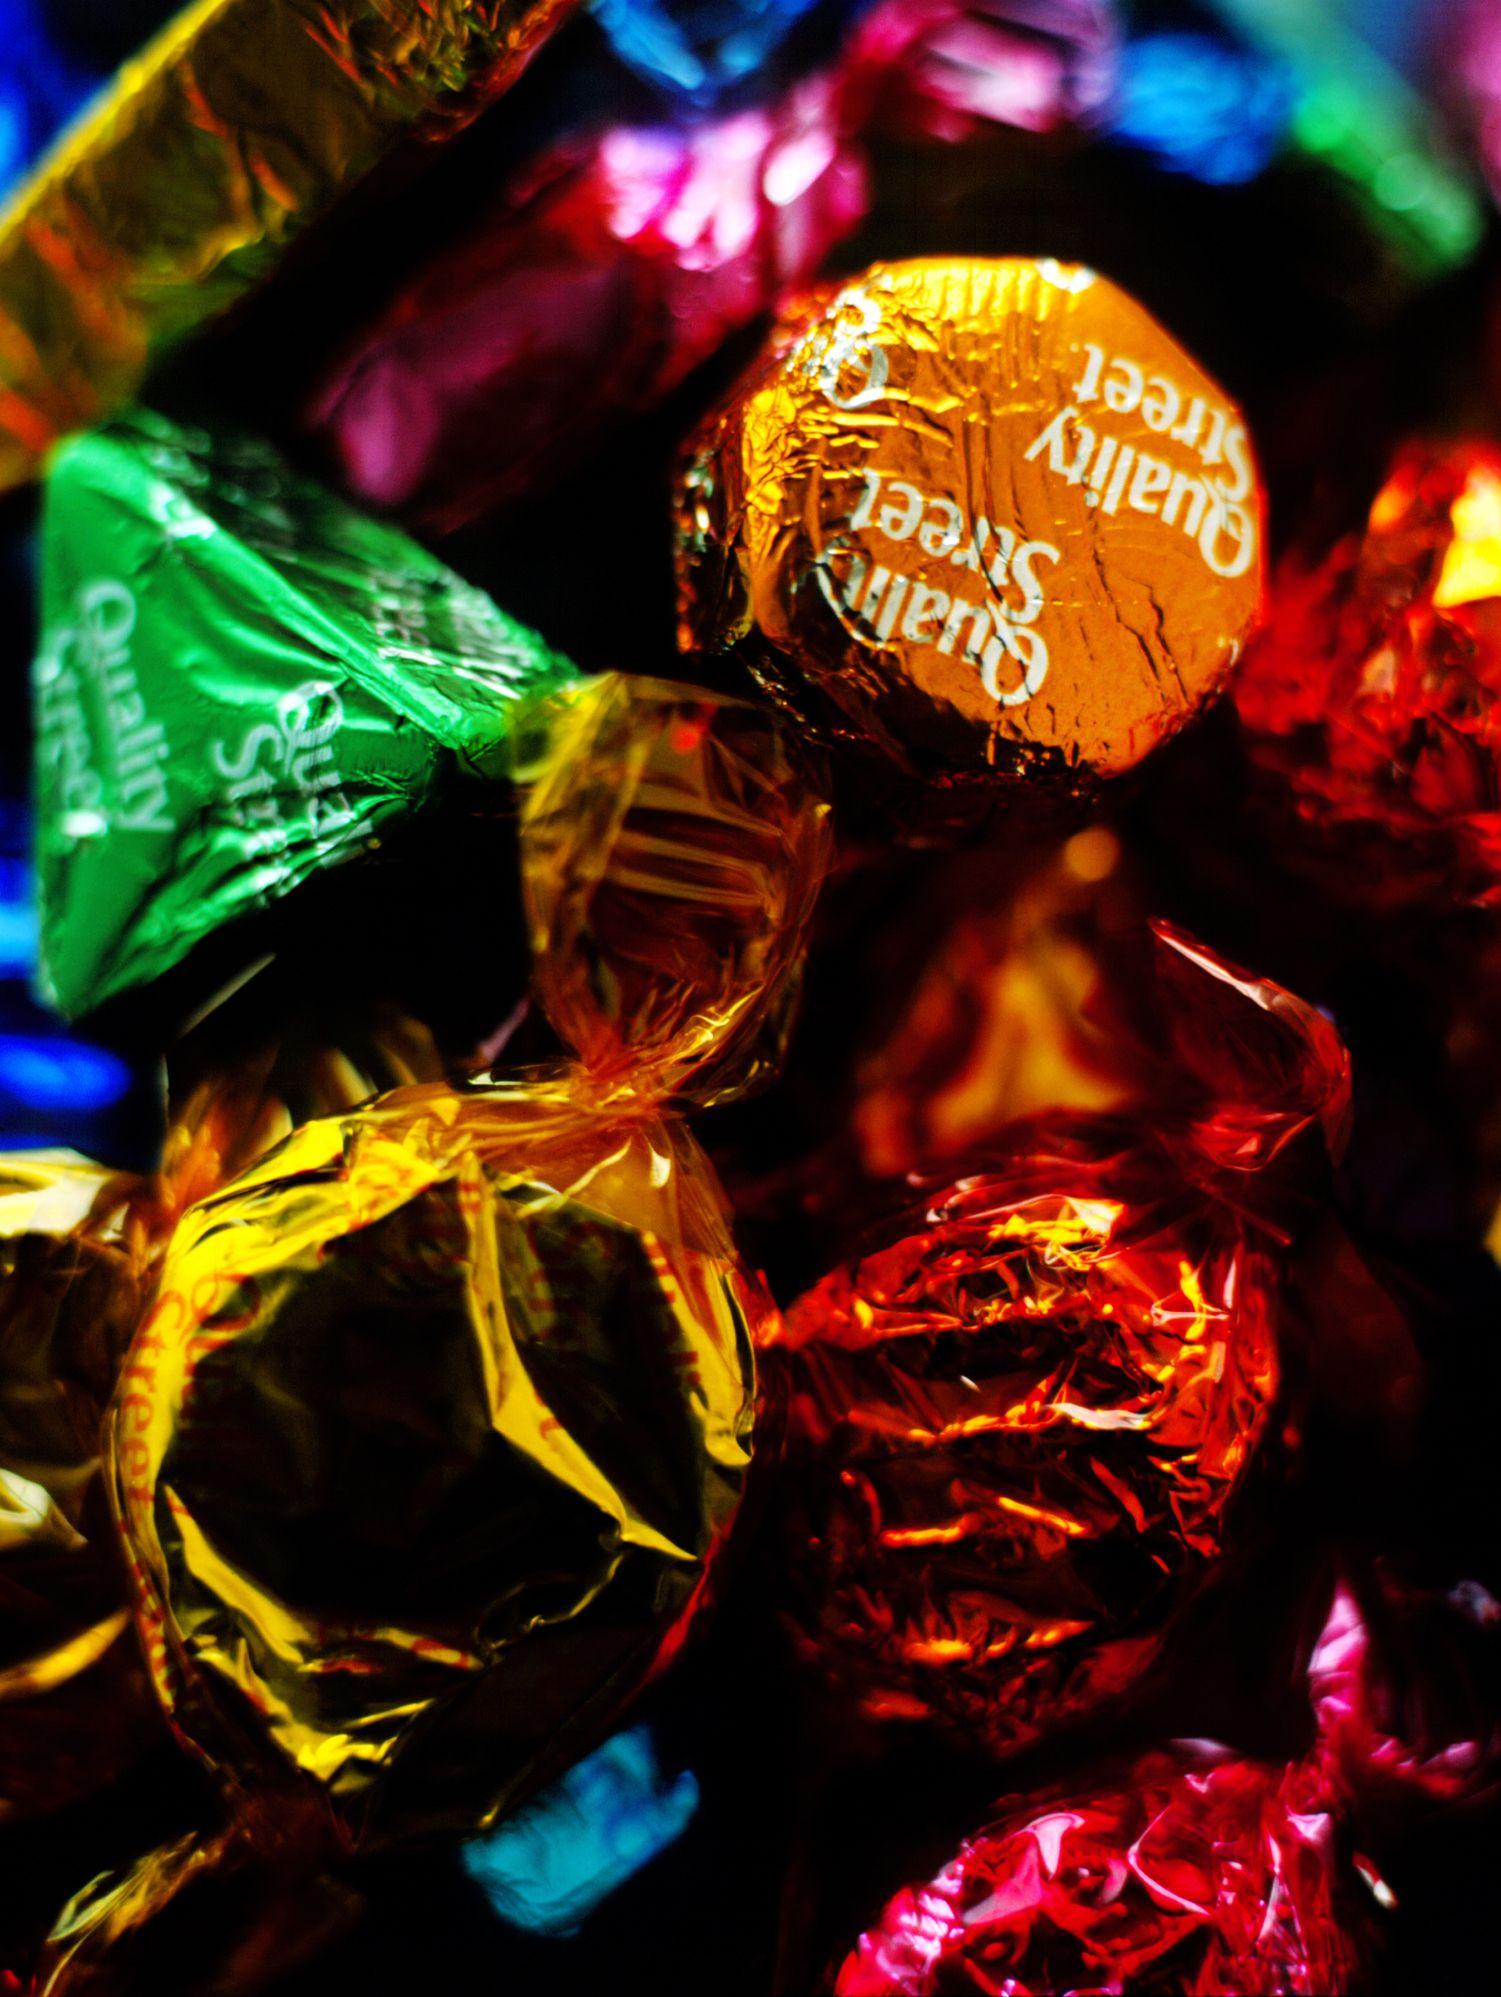 Bad news: Quality Street is getting rid of this favourite sweet